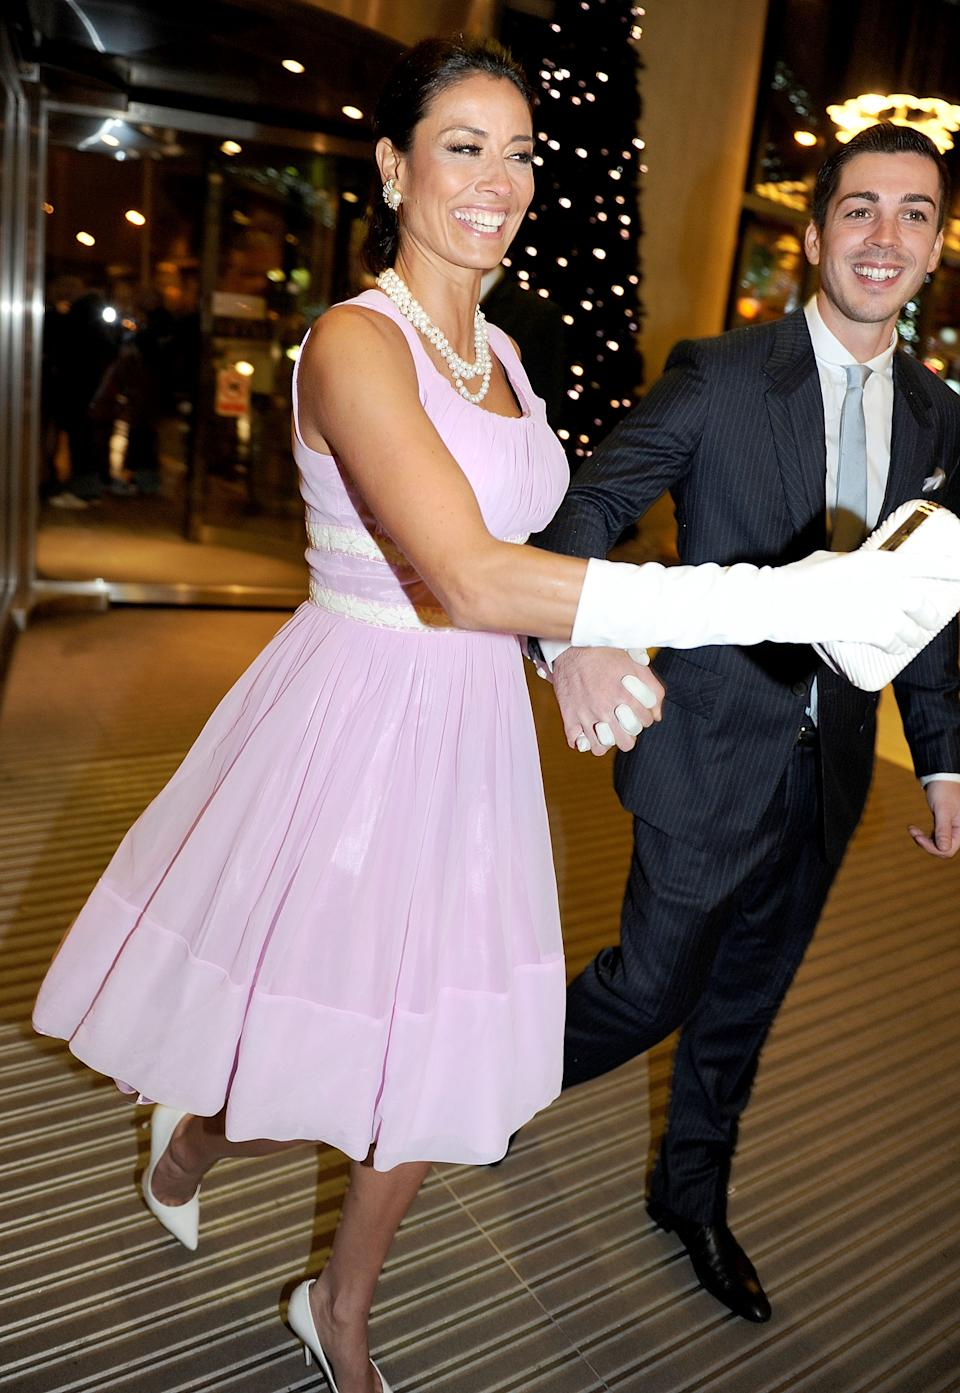 Melanie Sykes and boyfriend Jack Cockings attend the Hearts and Minds charity ball at Hilton Hotel on November 25, 2012 in Manchester, England.  (Photo by Shirlaine Forrest/WireImage)